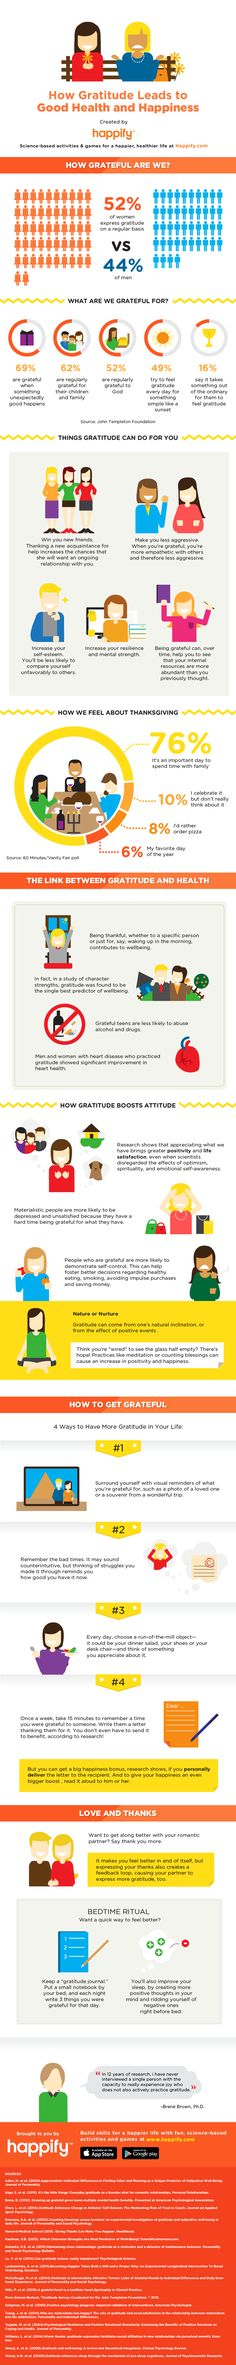 """We think of Thanksgiving as the time of year for practicing gratitude. But what if we told you that practicing gratitude year round has been scientifically proven to help you live a happier, healthier, and more successful life? Happify's newest infographic, """"How Gratitude Leads to Good Health and Happiness,"""" explains just that. This infographic is full of science-based facts all about the power of gratitude as well as helpful and simple tips for fitting it into your daily routine."""